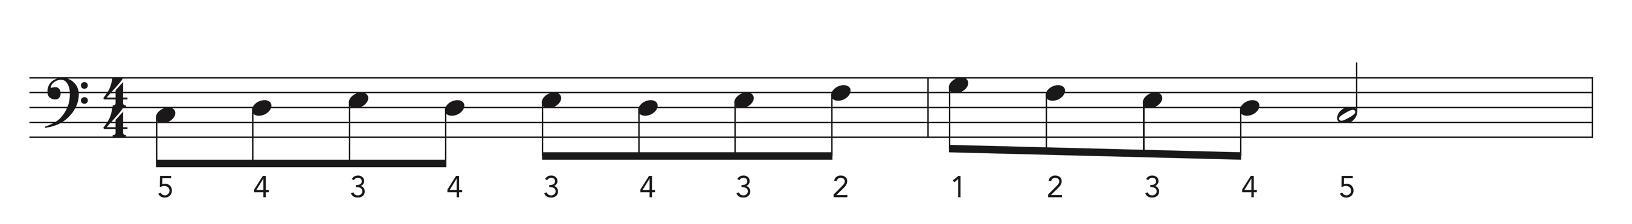 Five finger piano exercise written in music notation